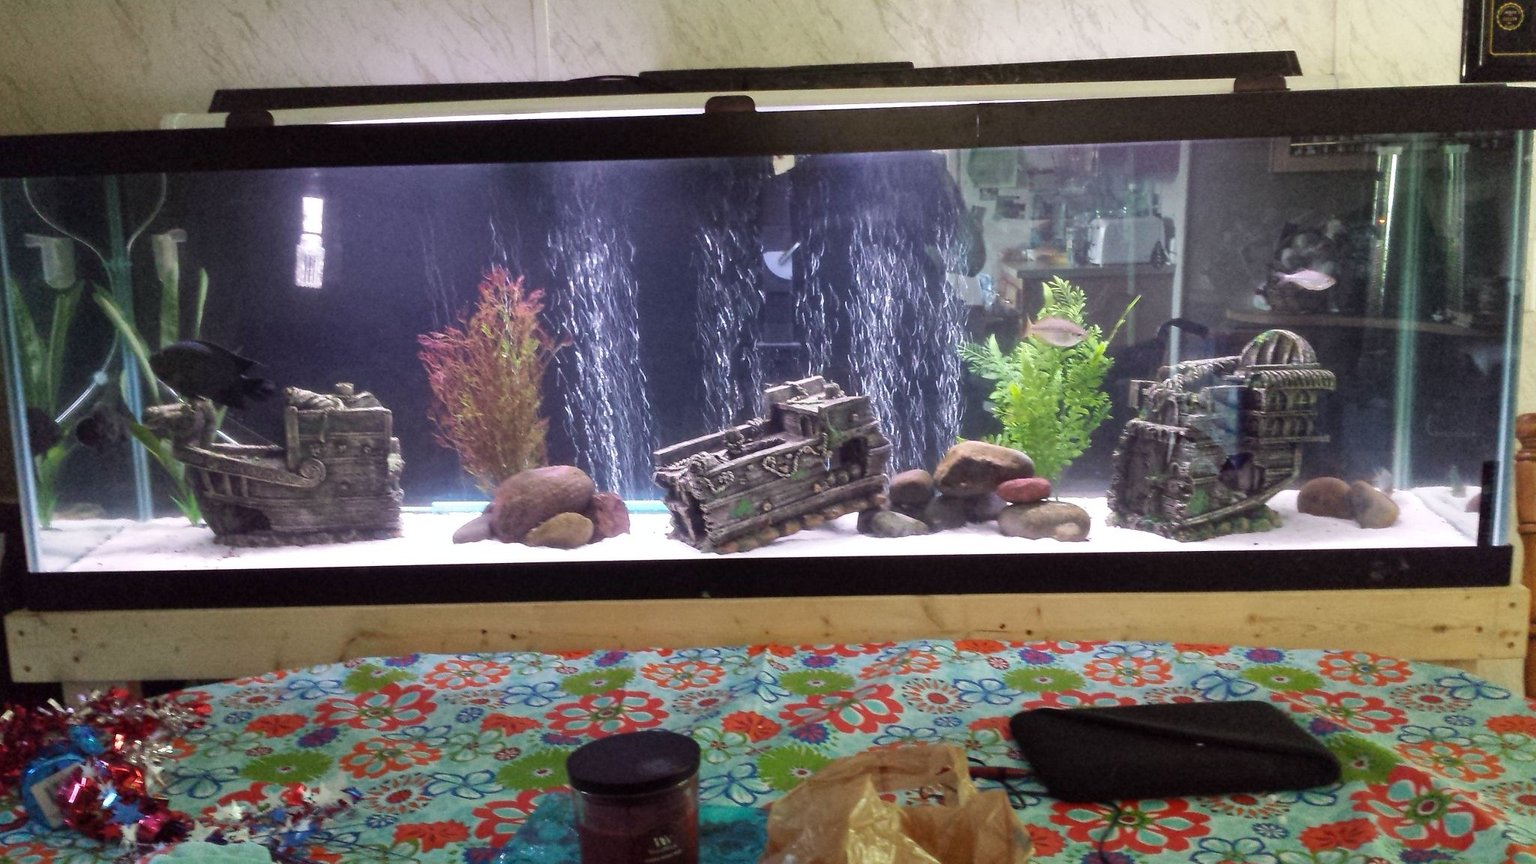 135 gallons freshwater fish tank (mostly fish and non-living decorations) - Hard to fit a tank 6 foot long in a good picture. Lol